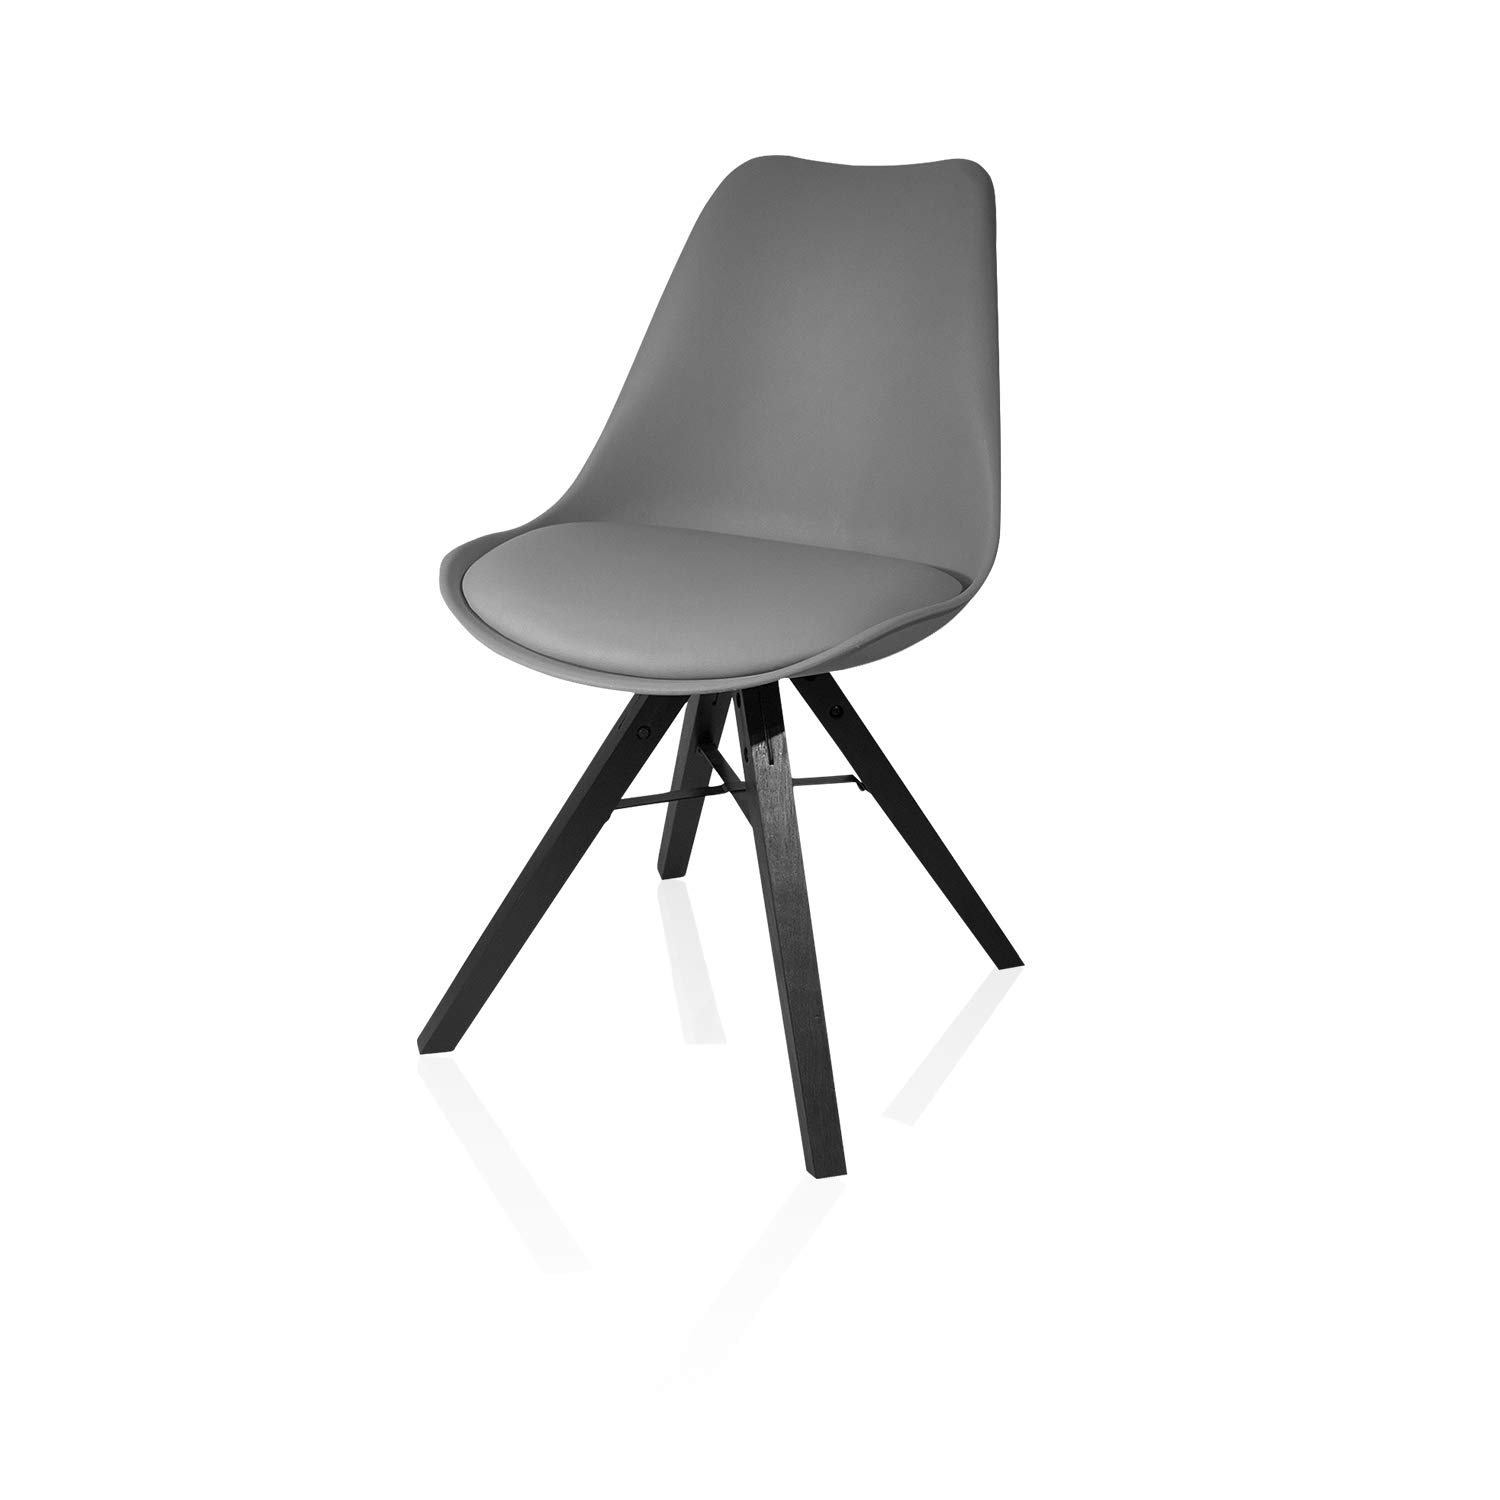 Heyesk Dining Room Chair Mid Century Modern Kitchen Chairs,Upholstered  Seat(Grey, 1)